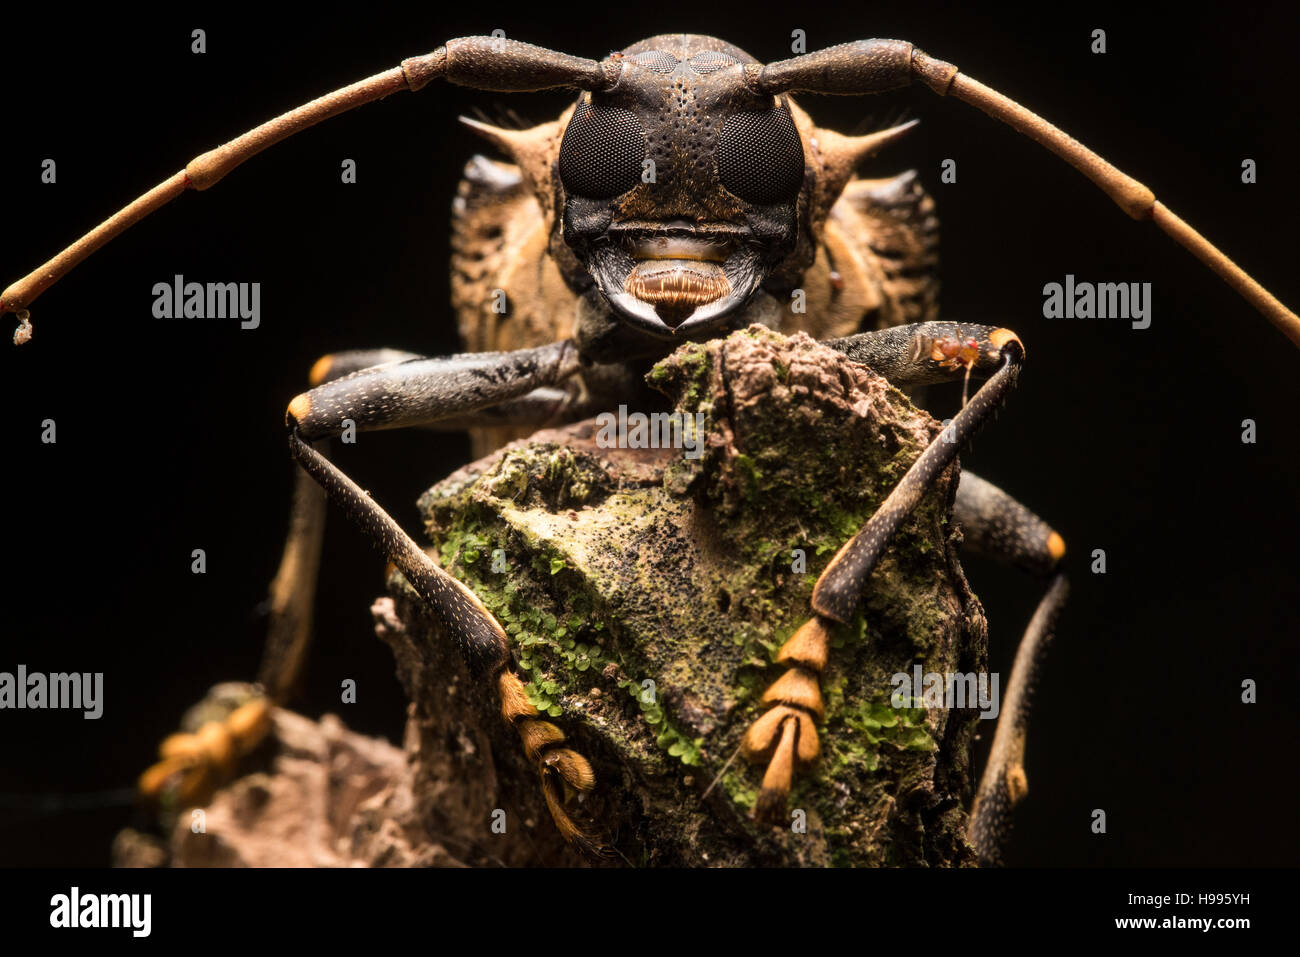 A Beetle portrait from the Peruvian jungle. - Stock Image